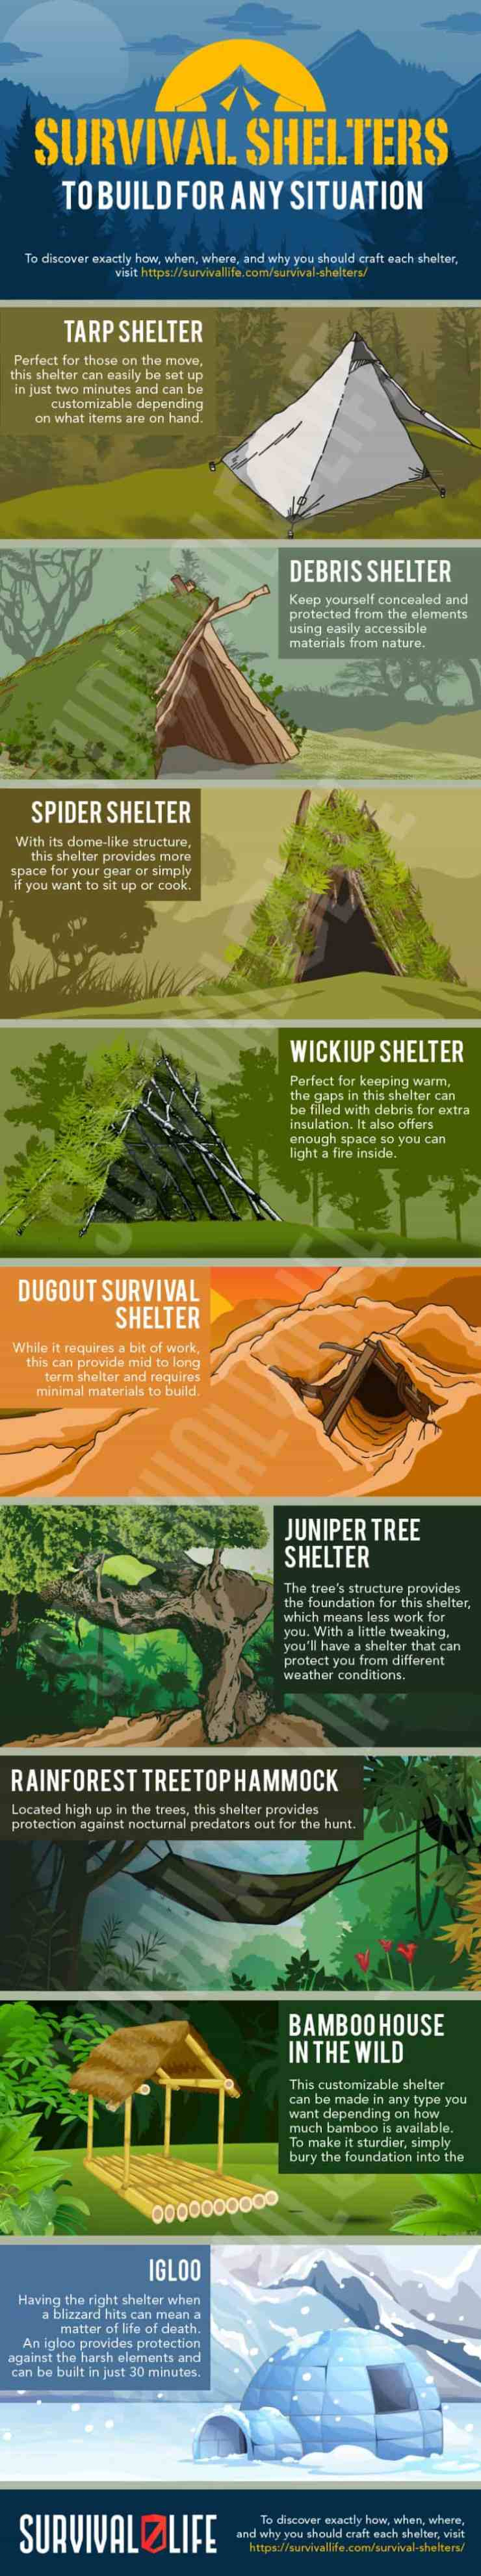 Infographic | How To Build DIY Survival Shelters To Survive Through The Night